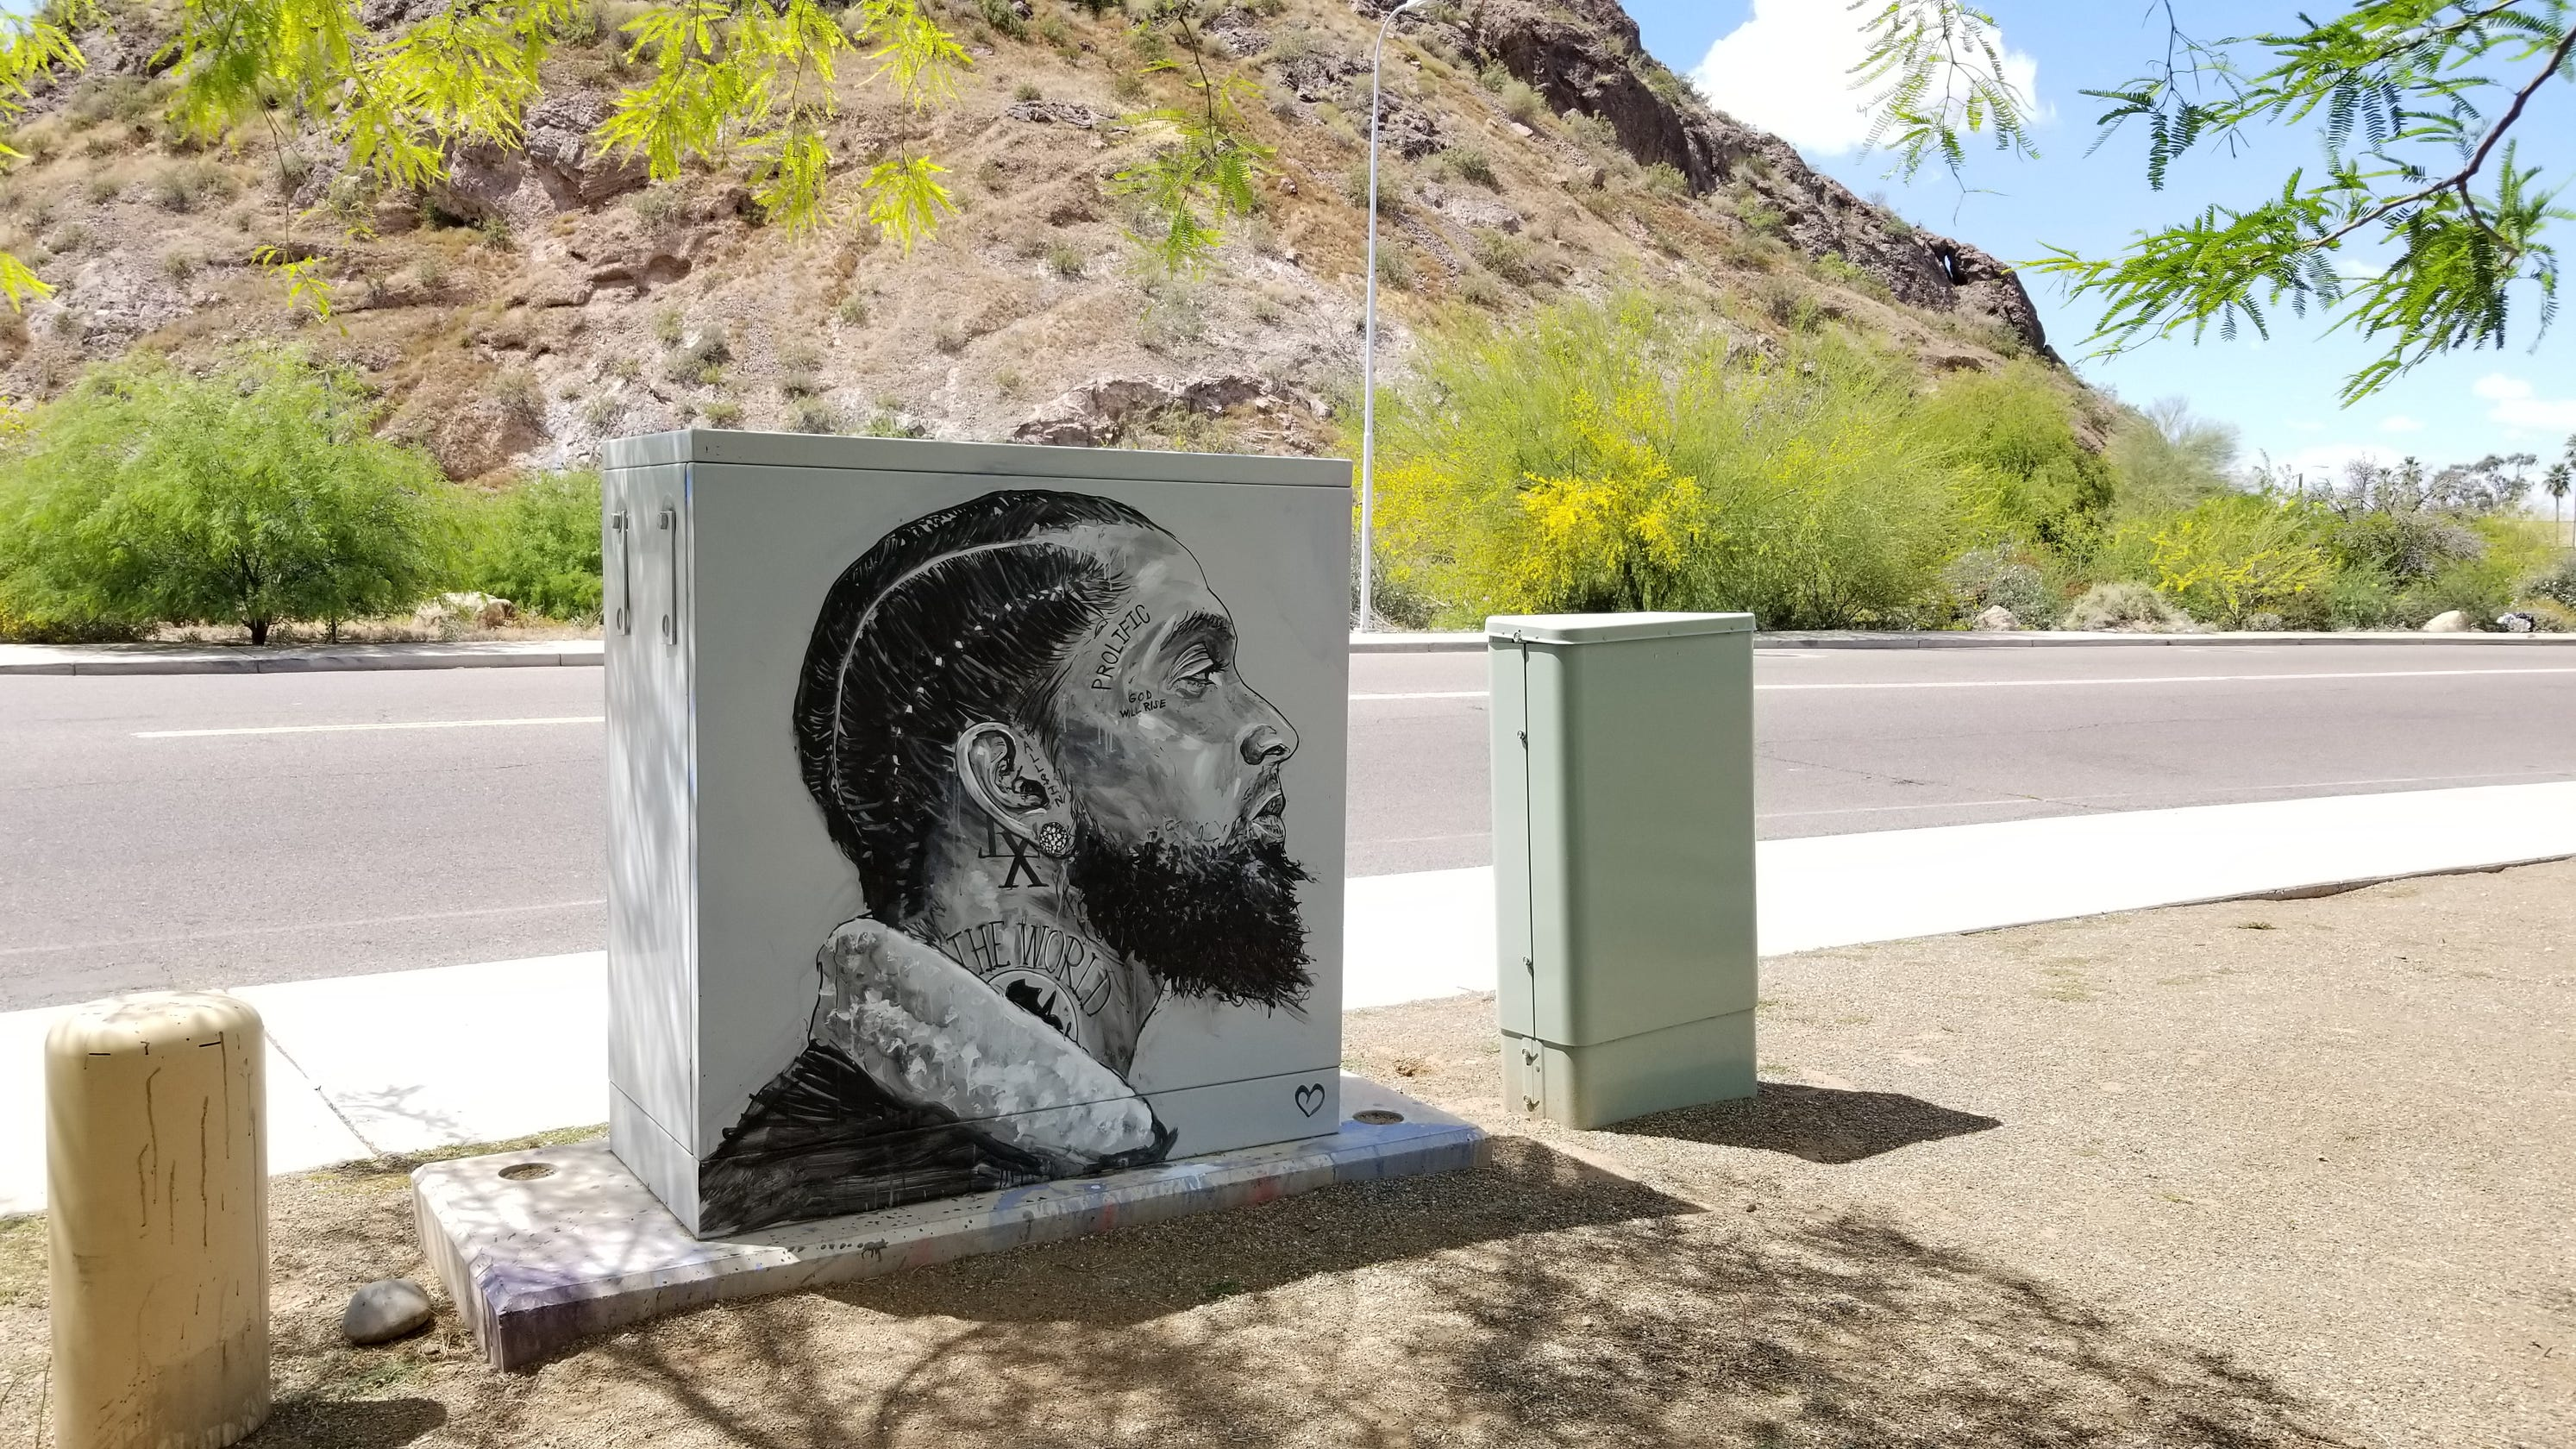 Tempe artist honors slain rapper Nipsey Hussle with street art